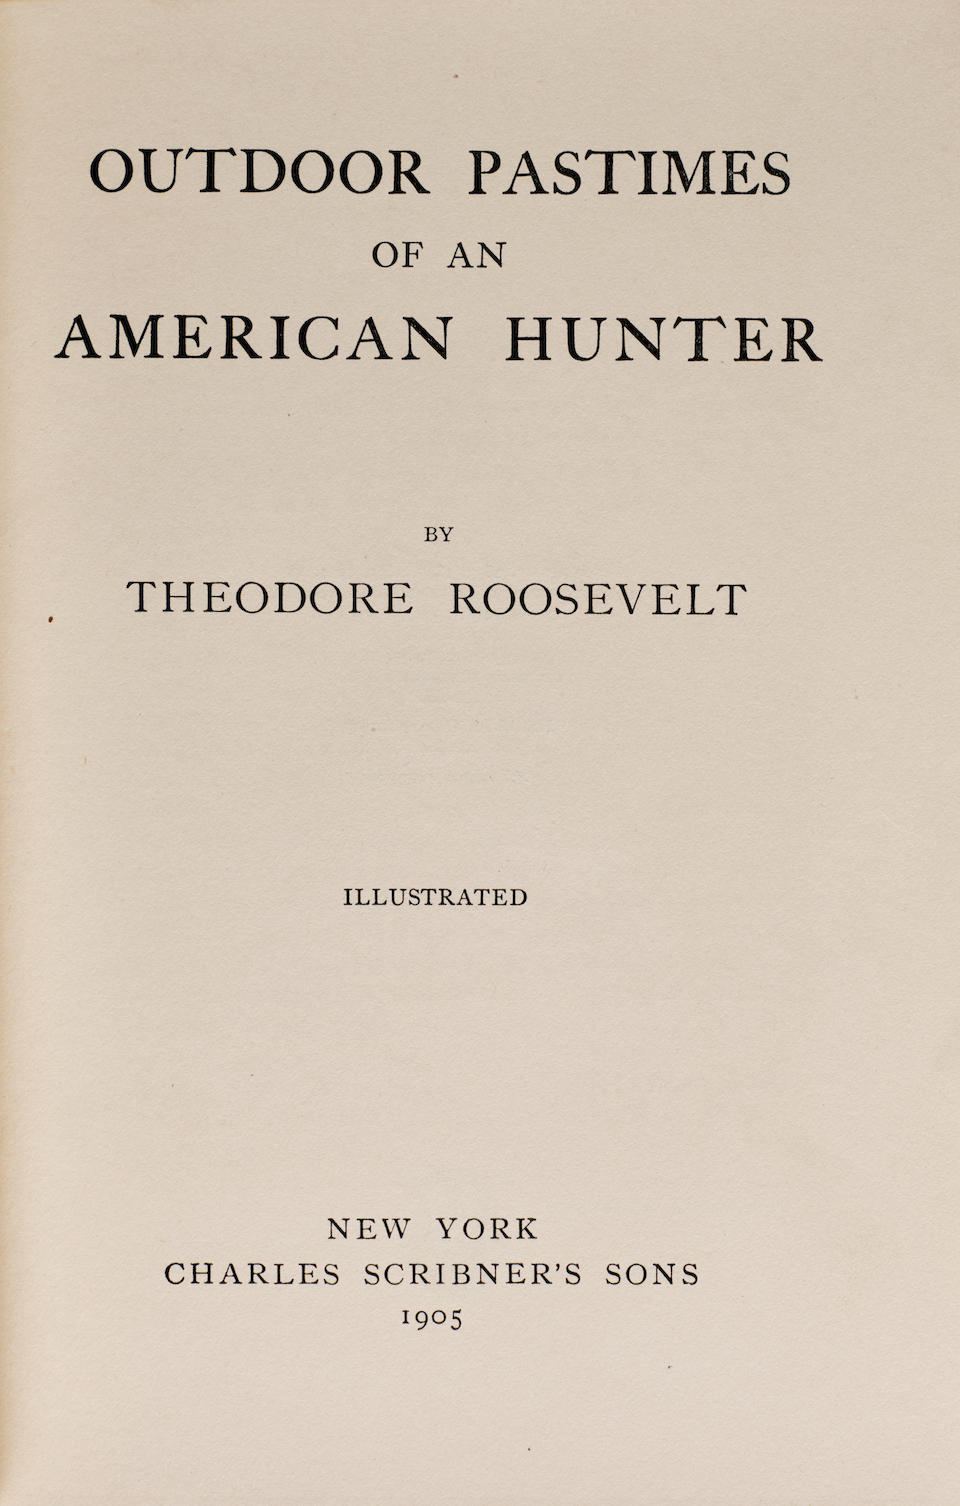 ROOSEVELT, THEODORE. 1858-1918. Outdoor Pastimes of an American Hunter. New York: Charles Scribner's Sons,1905.